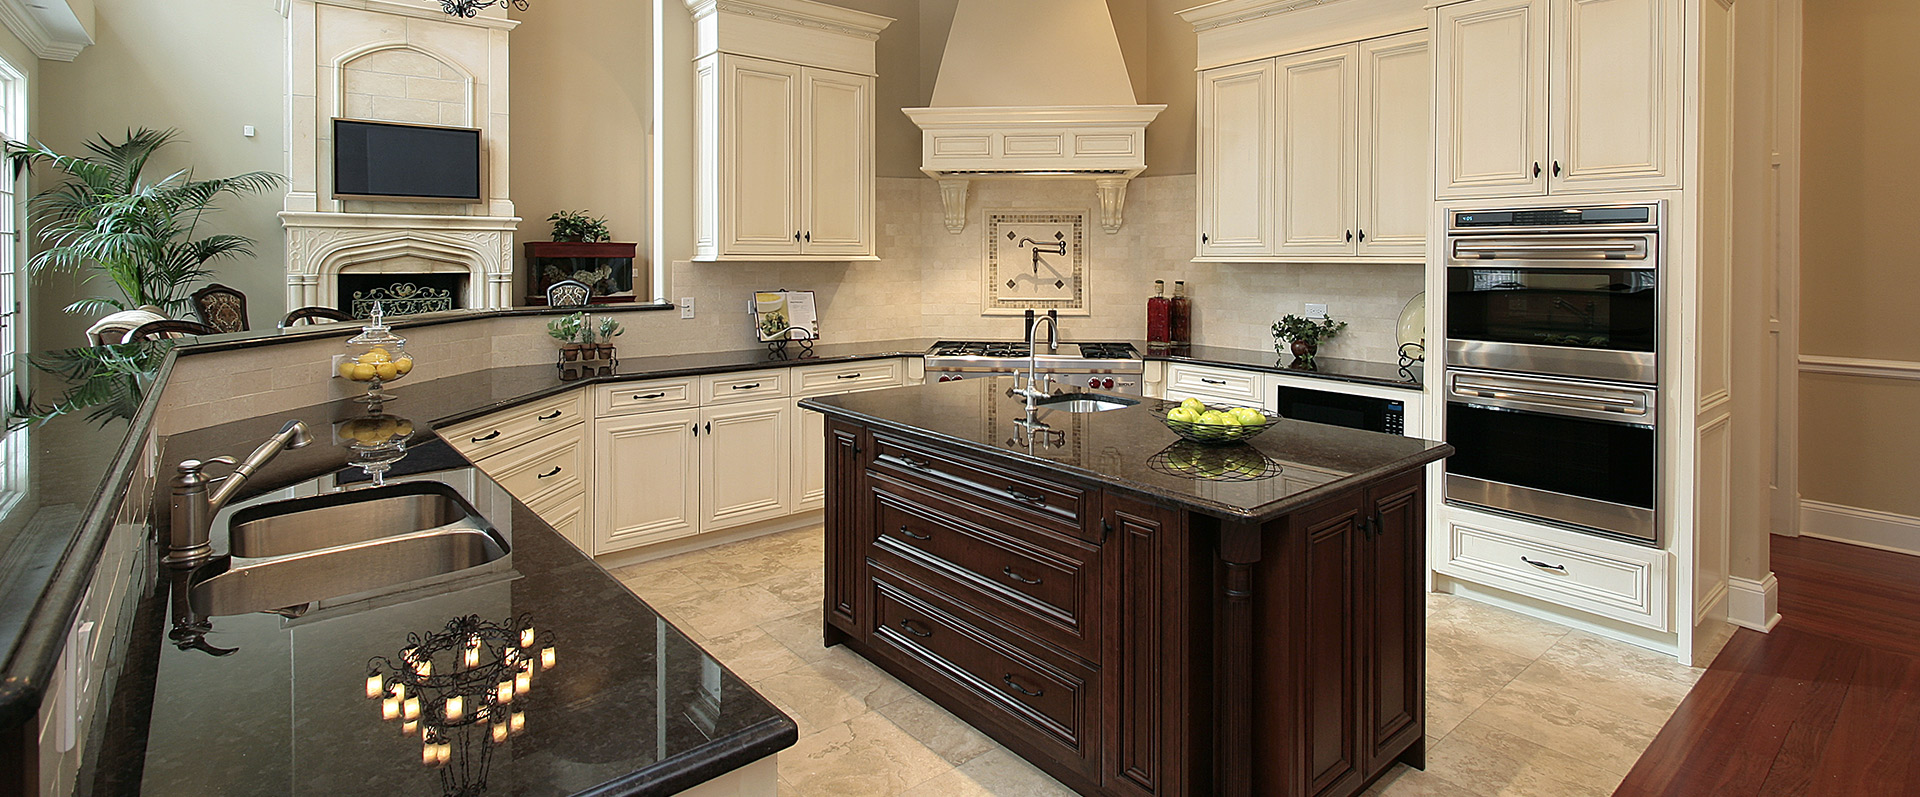 A&E Cabinets: Kitchen & Bathroom Remodeling Design & Cabinets ...